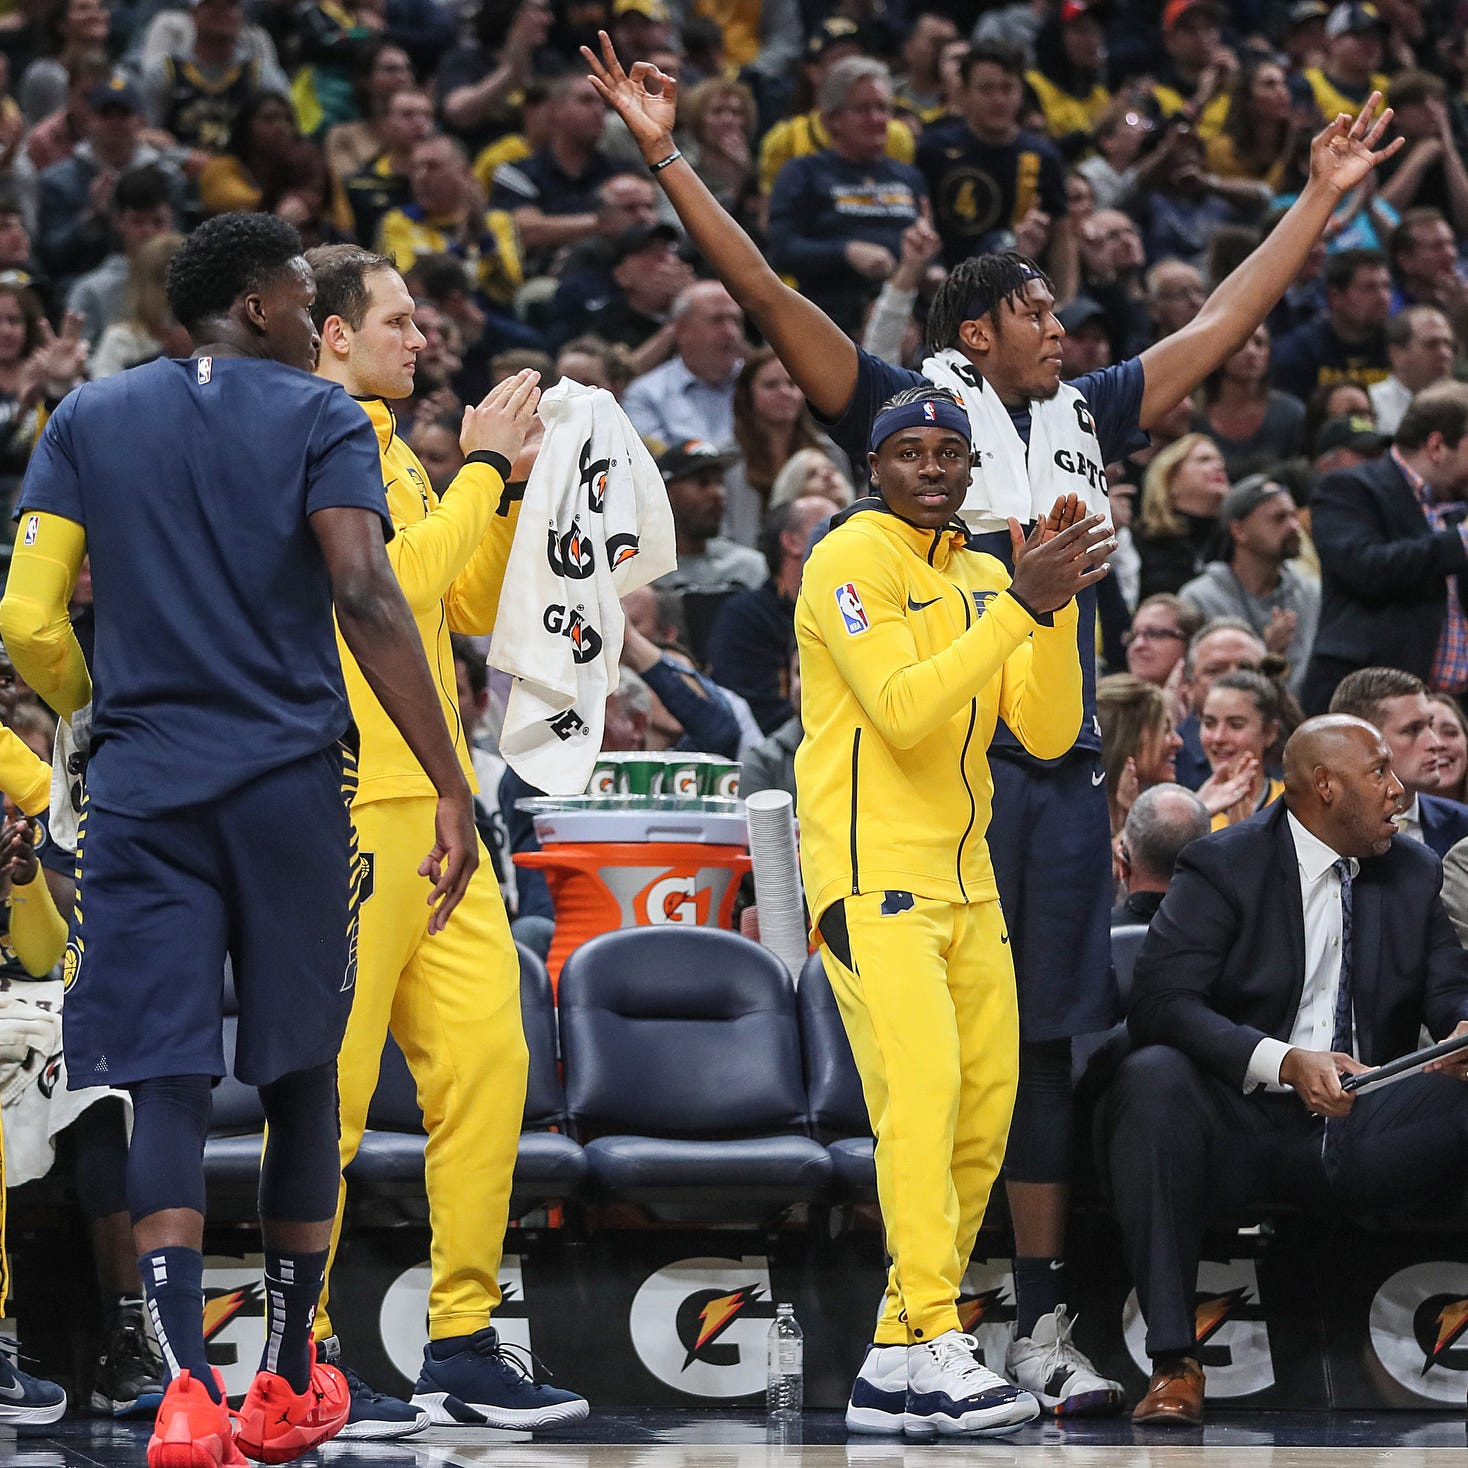 Insider: 3 most important takeaways from Pacers' season-opening rout of Grizzlies